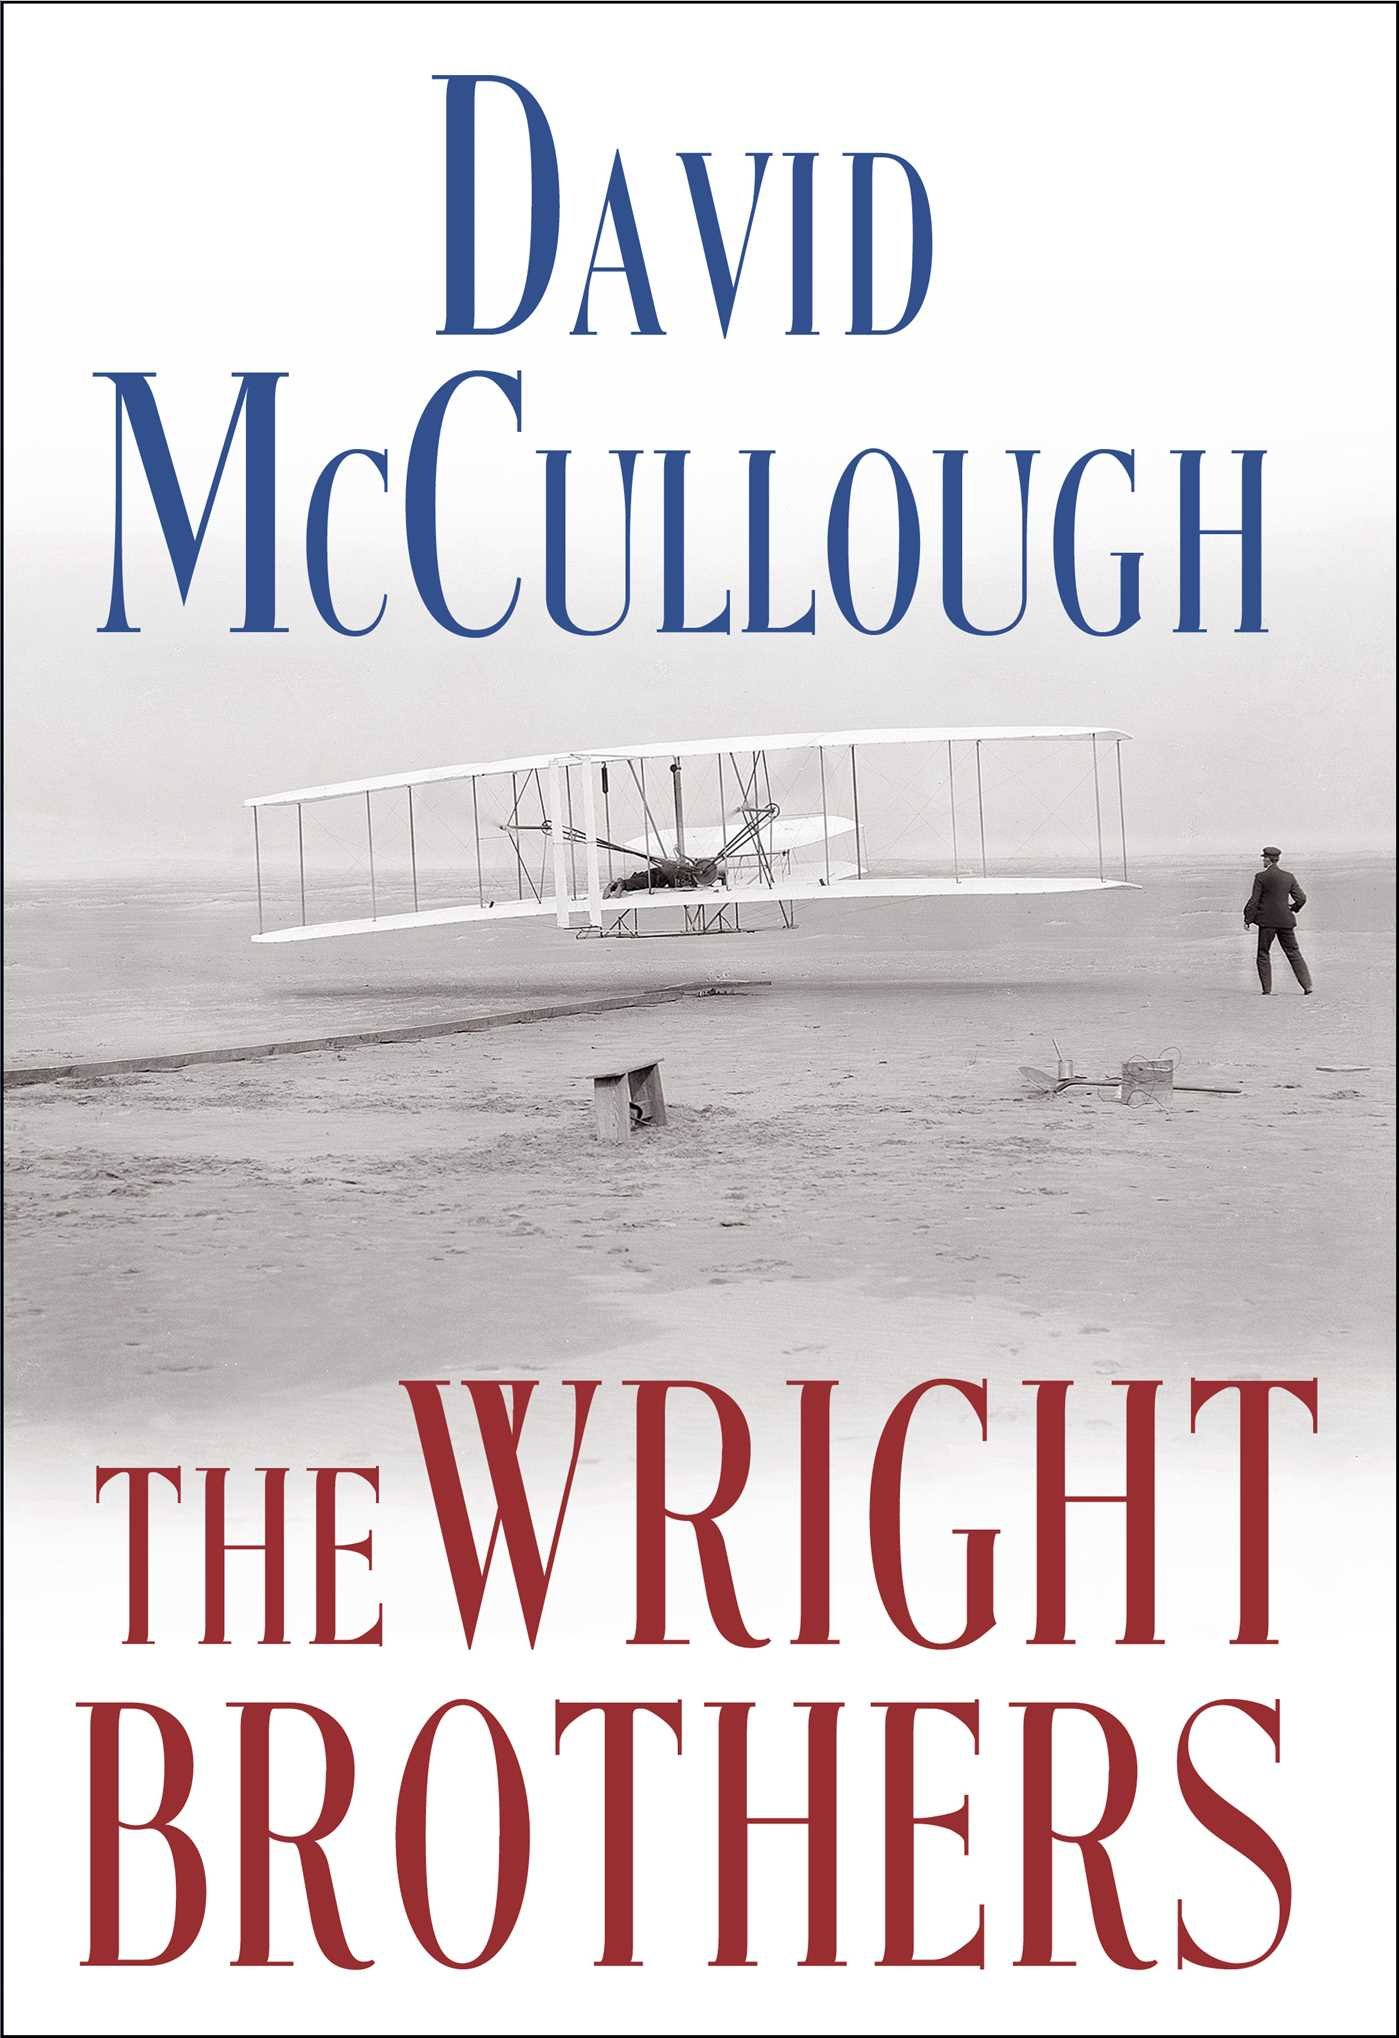 The Wright Brothers  by David McCullough was released this week